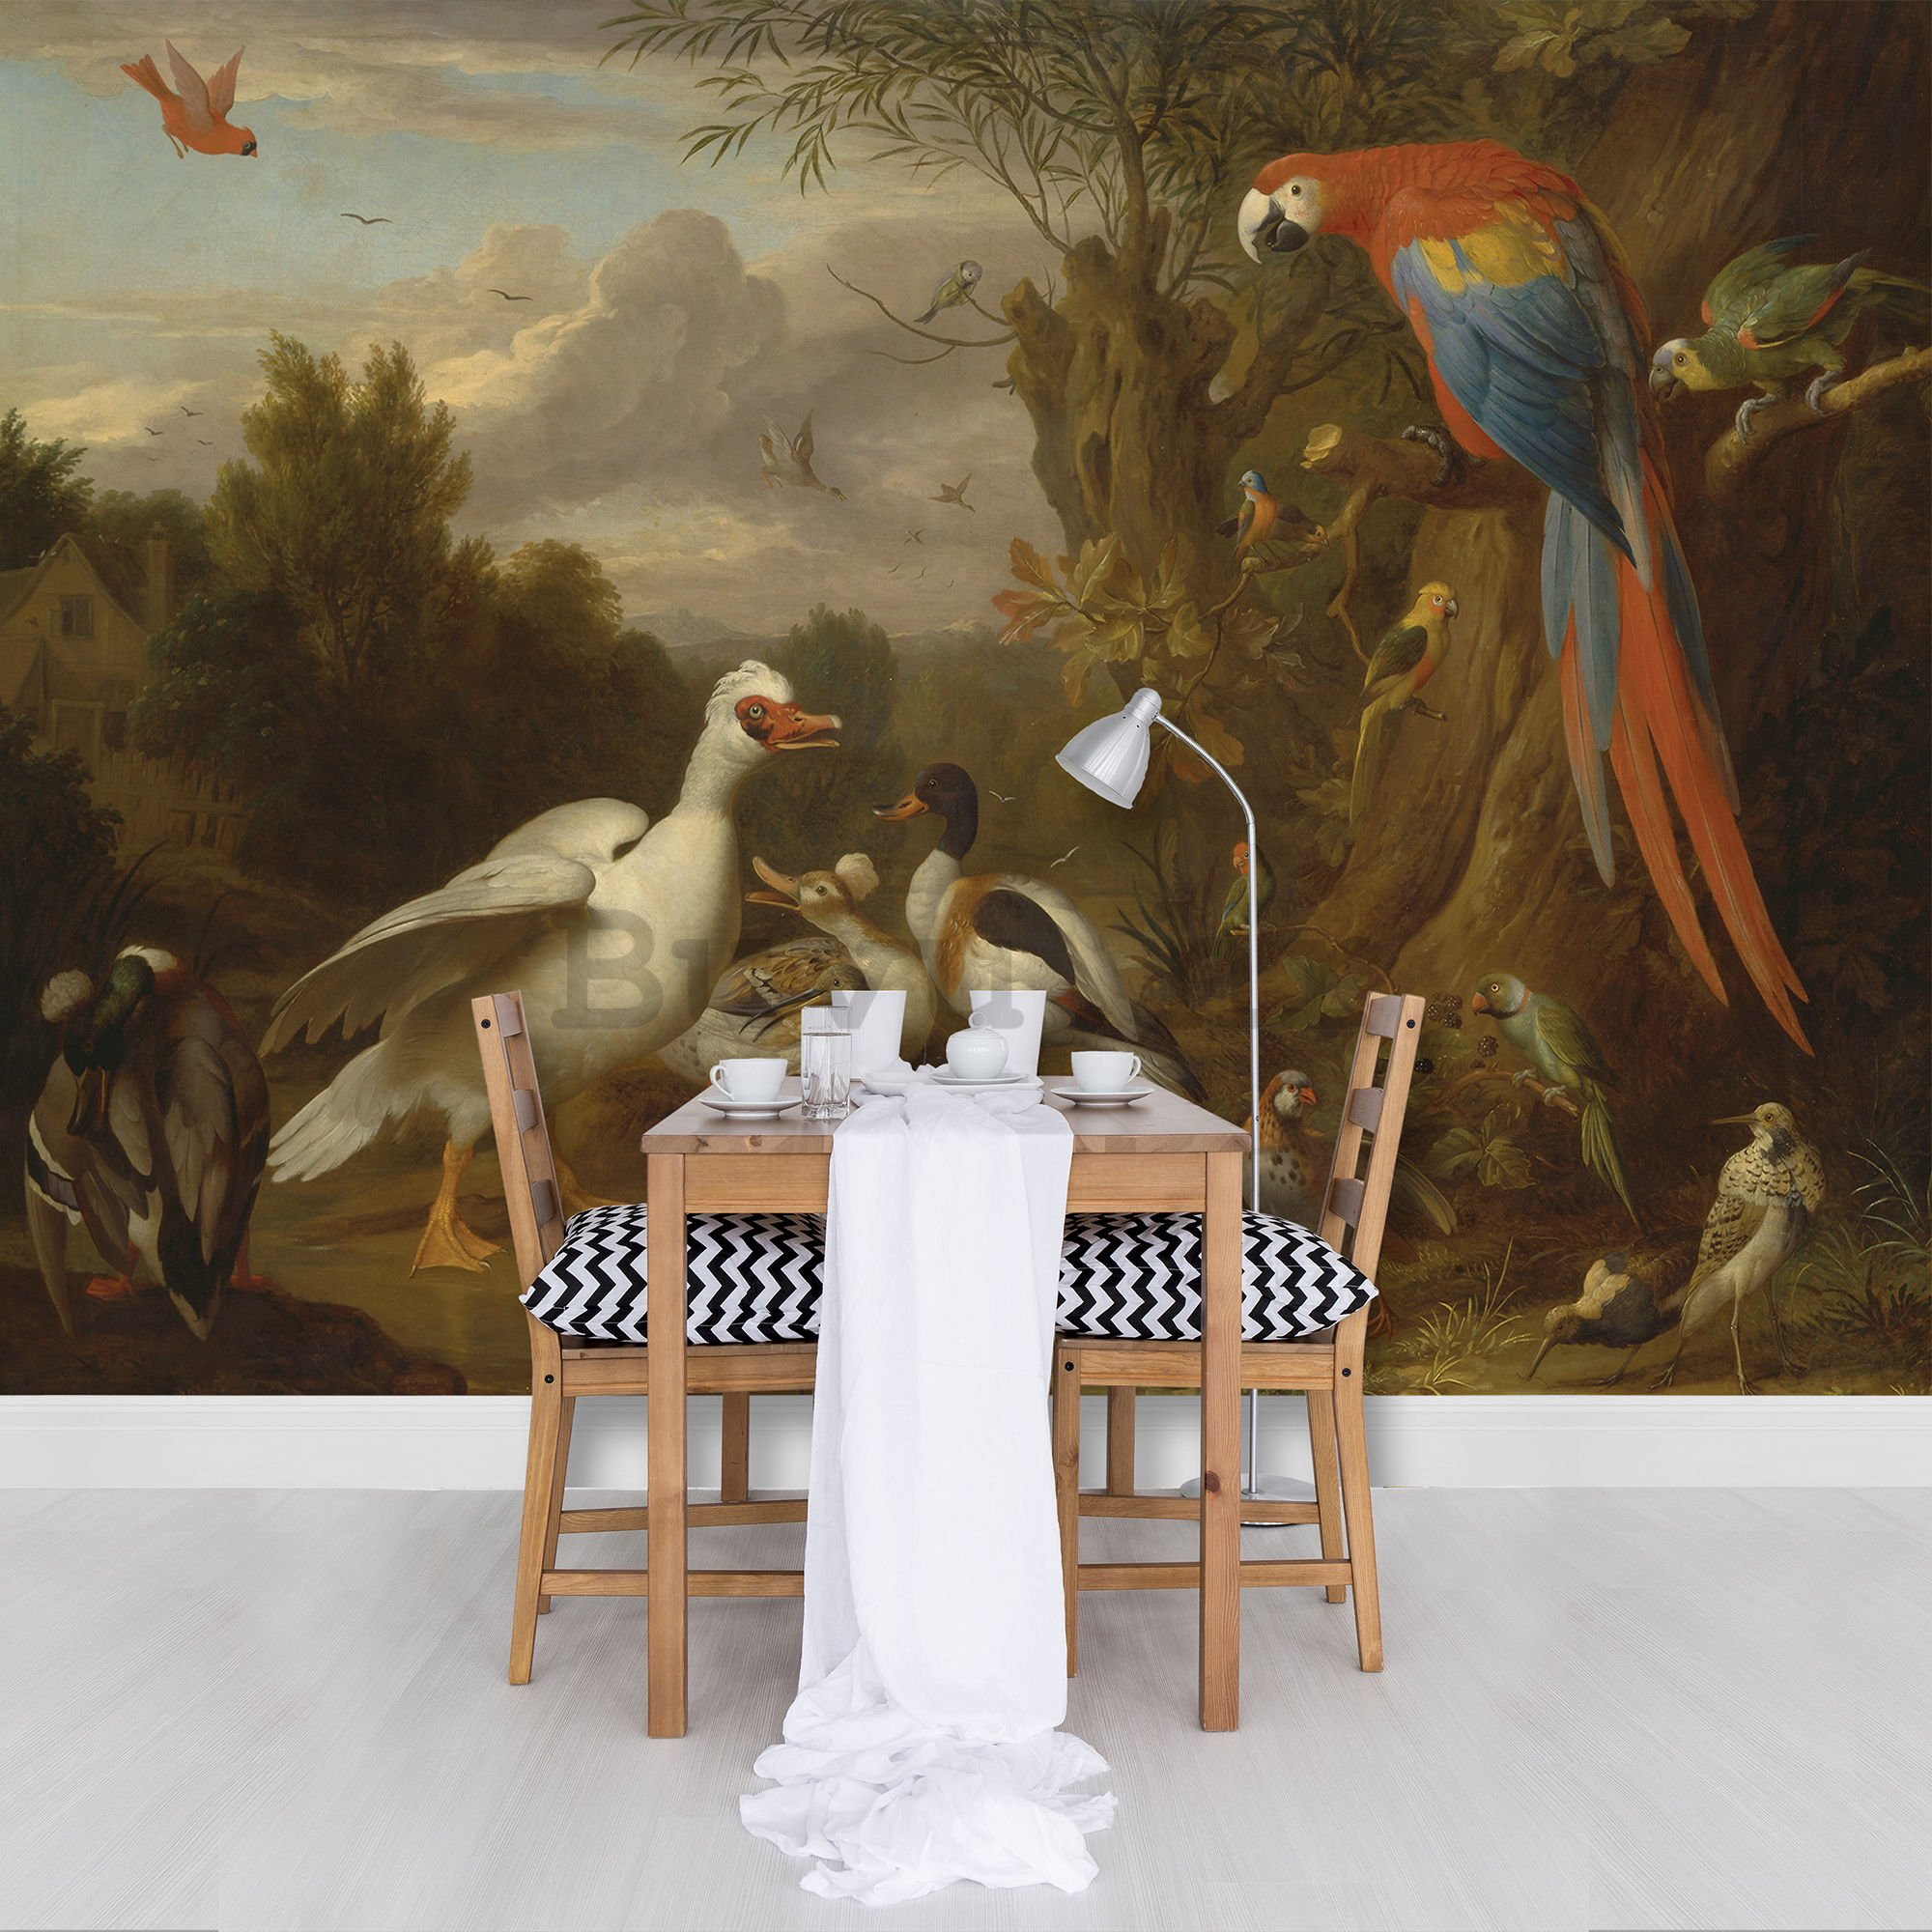 Foto tapeta: Ducks, Parrots and Other Birds in a Landscape - 184x254 cm